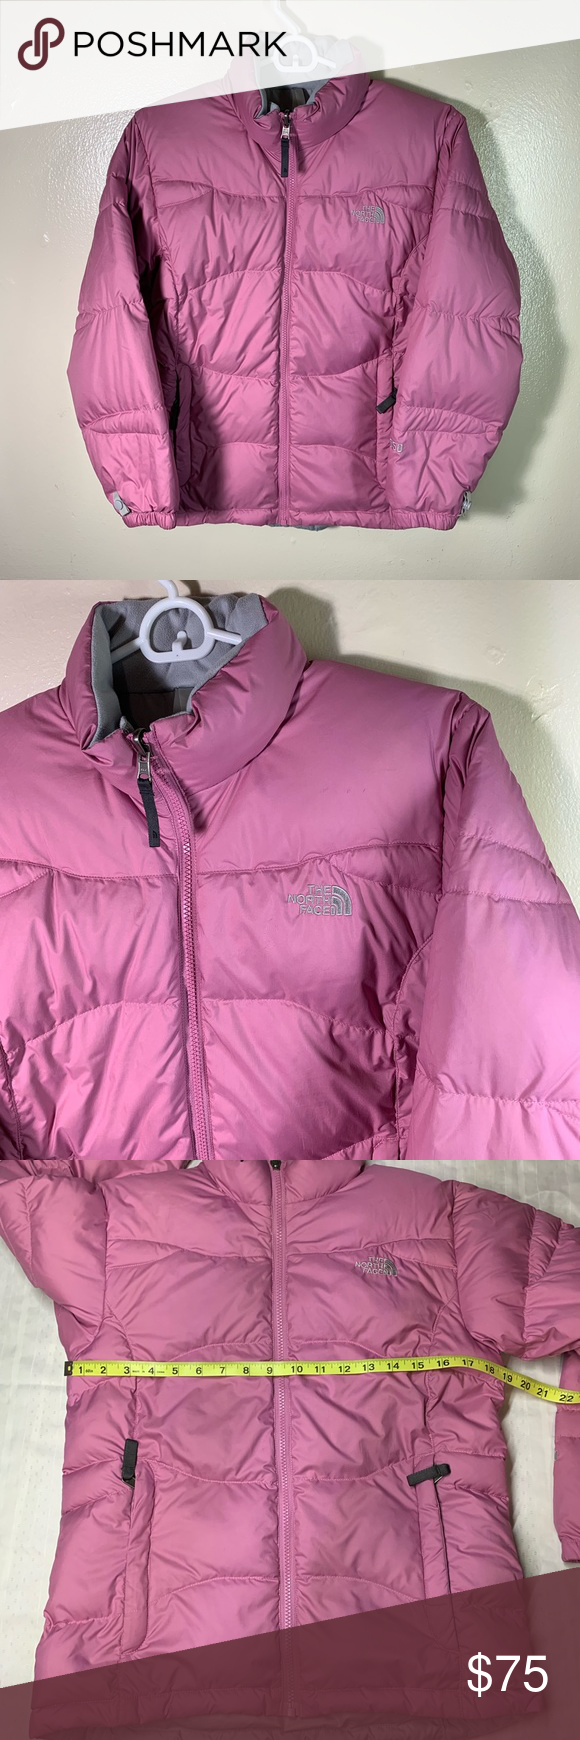 The North Face Girls Jacket North Face Puffer Jacket Girls North Face Jacket North Face Girls [ 1740 x 580 Pixel ]